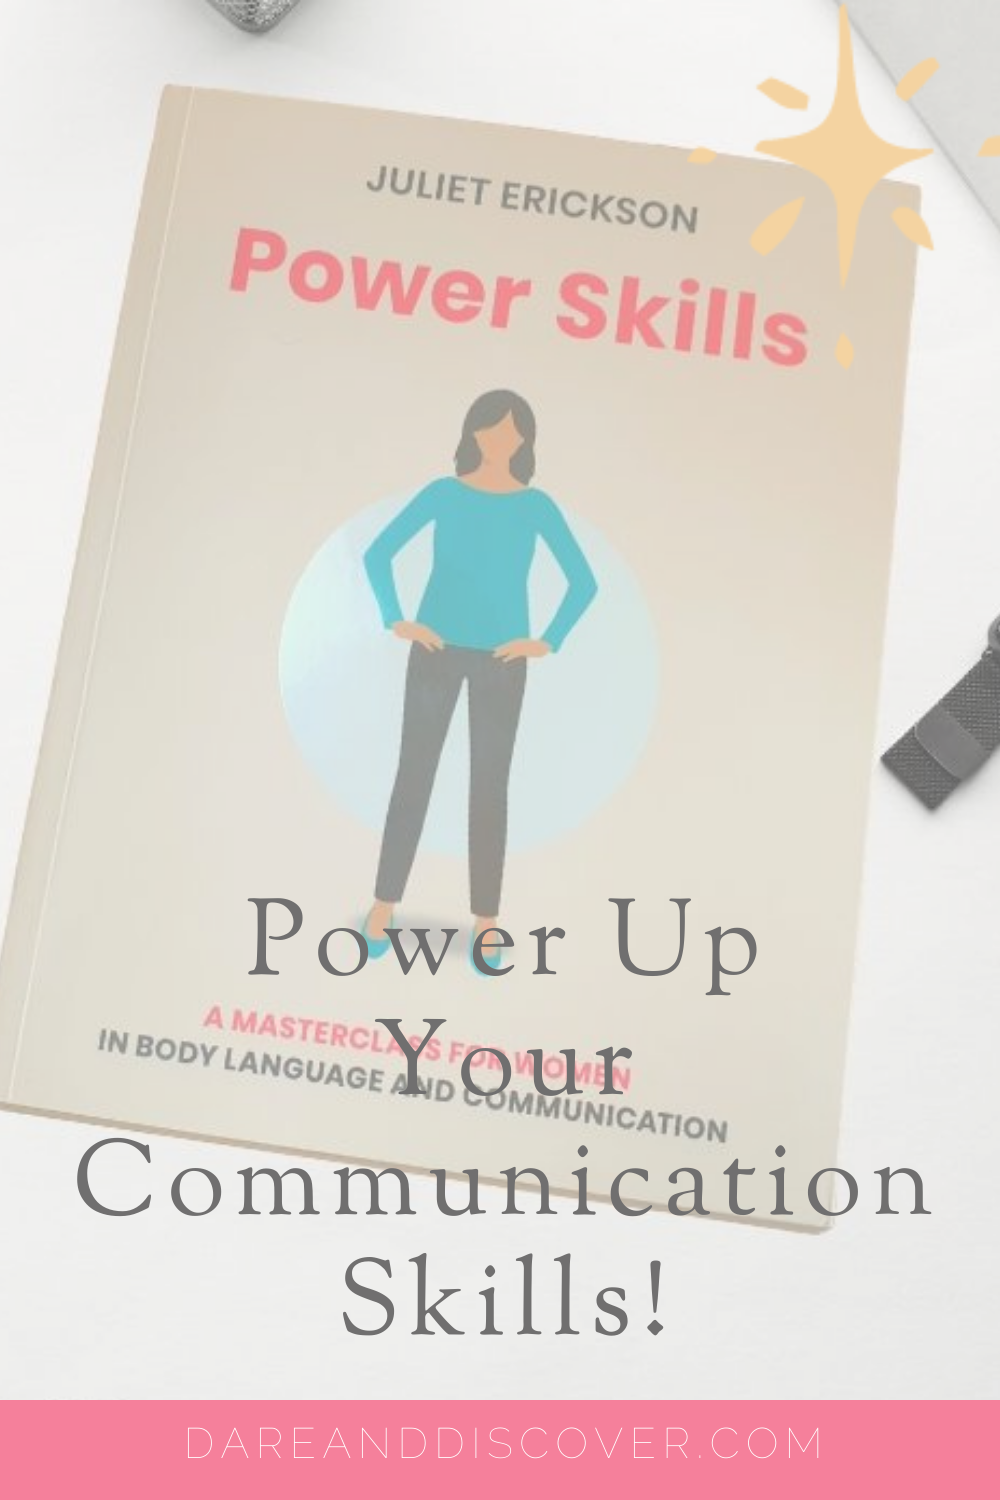 Do you struggle to communicate confidently? Do you want to improve your communication skills and get your message across? Juliet Erickson's Power Skills will help you communicate with confidence, stand in your power, and get your voice heard. If you want to learn to communicate with confidence then this is the book for you! | Communication Skills | Communication Skills For Women | Communicate With Confidence | #Communication #Confidence #CommunicationSkills #BookReview